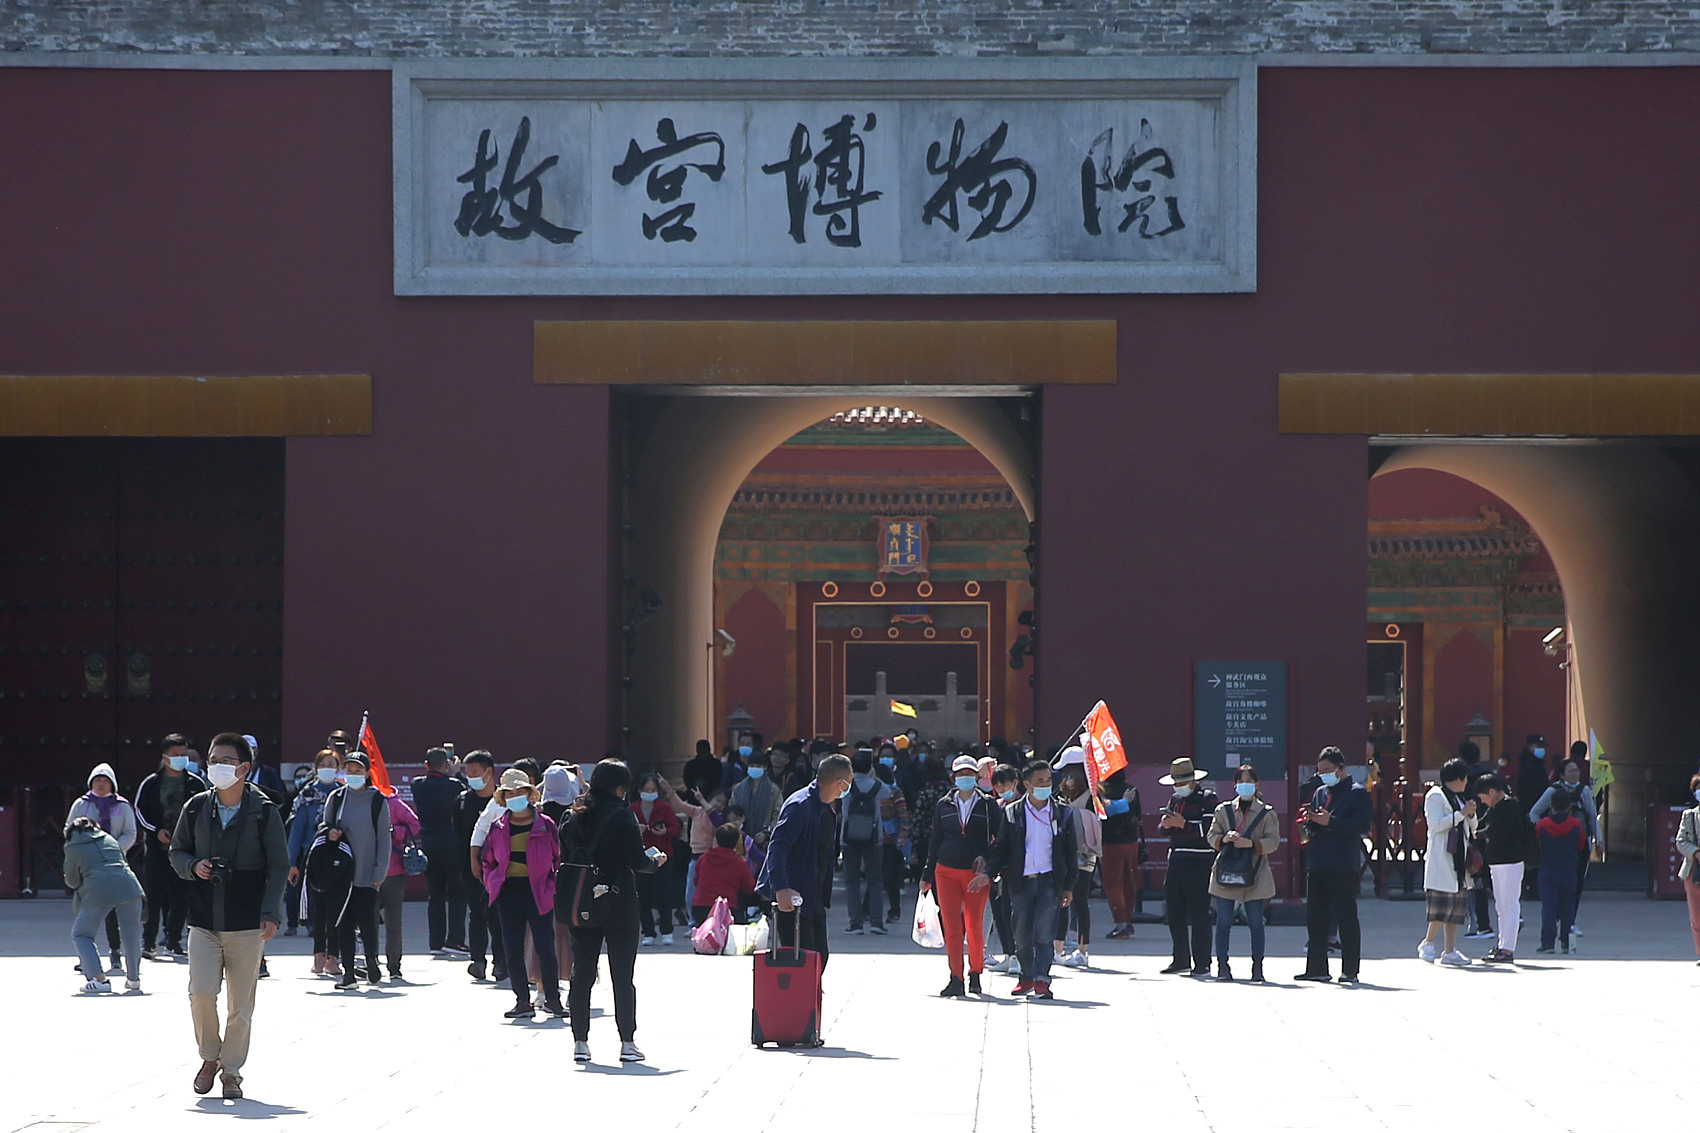 Beijing receives nearly 10 million holiday visits